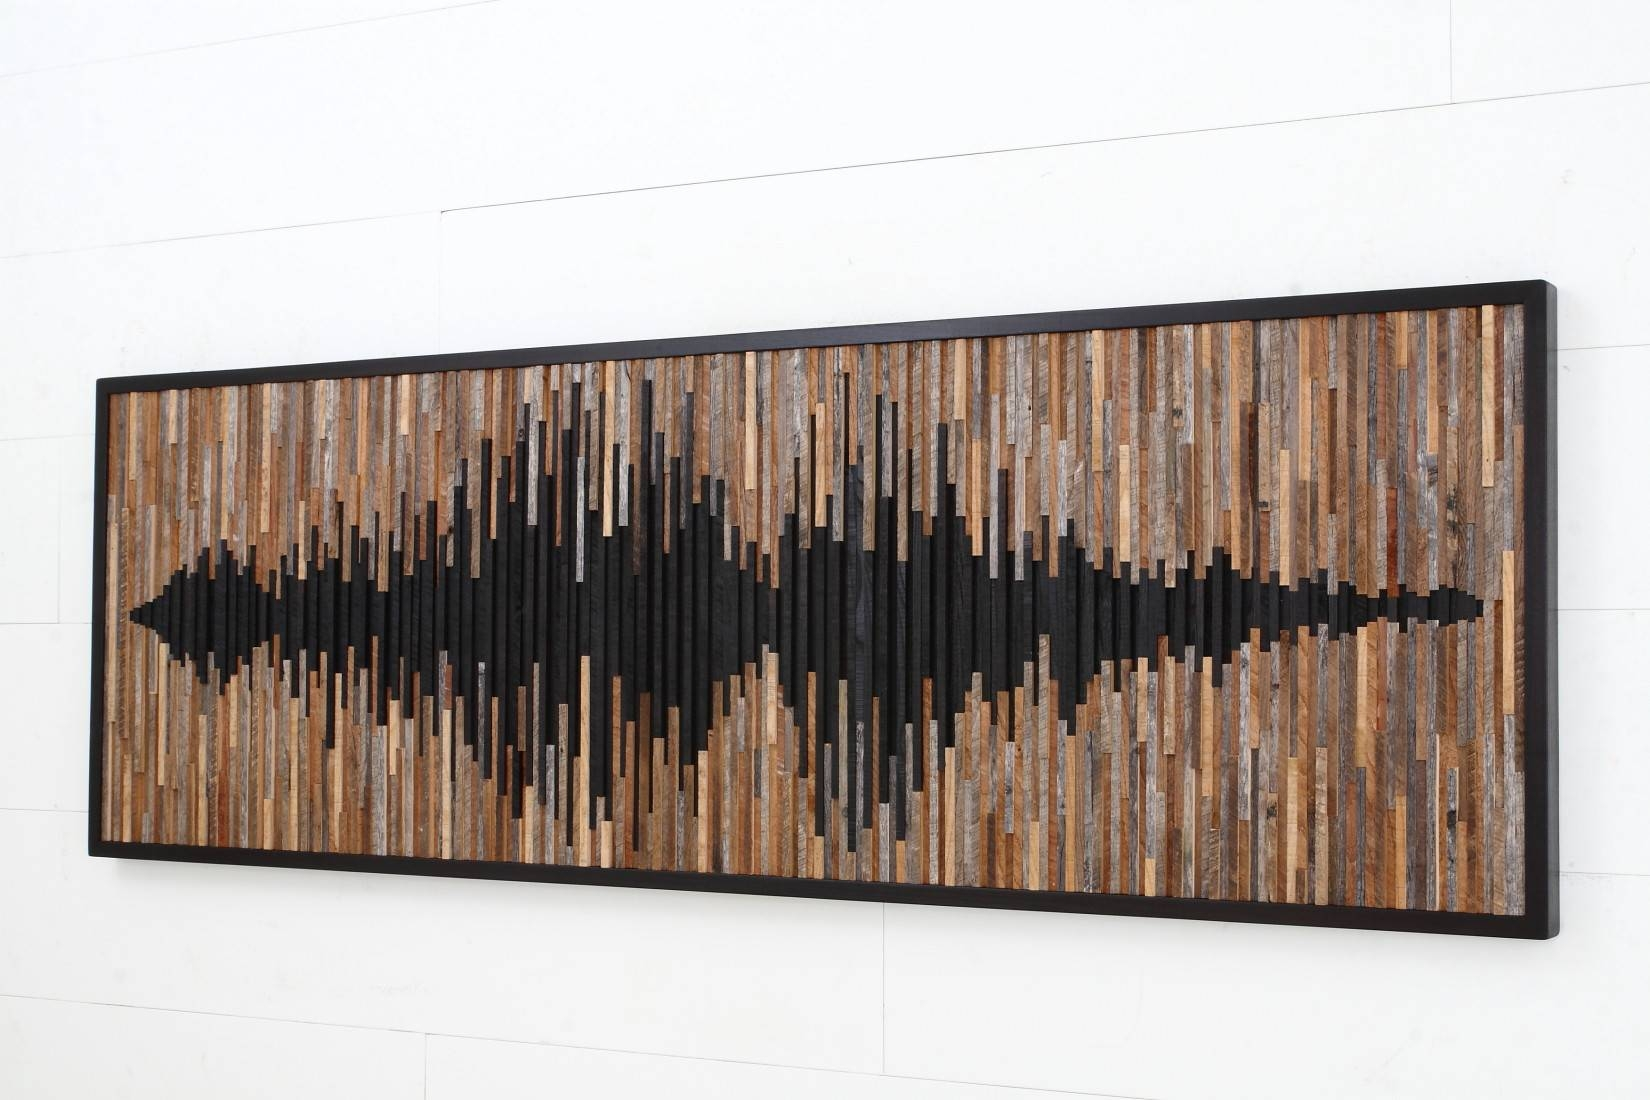 Wall Art Design Ideas: Rustic Slice Abstract Wood Wall Art Amazing In Recent Wall Art On Wood (View 10 of 20)